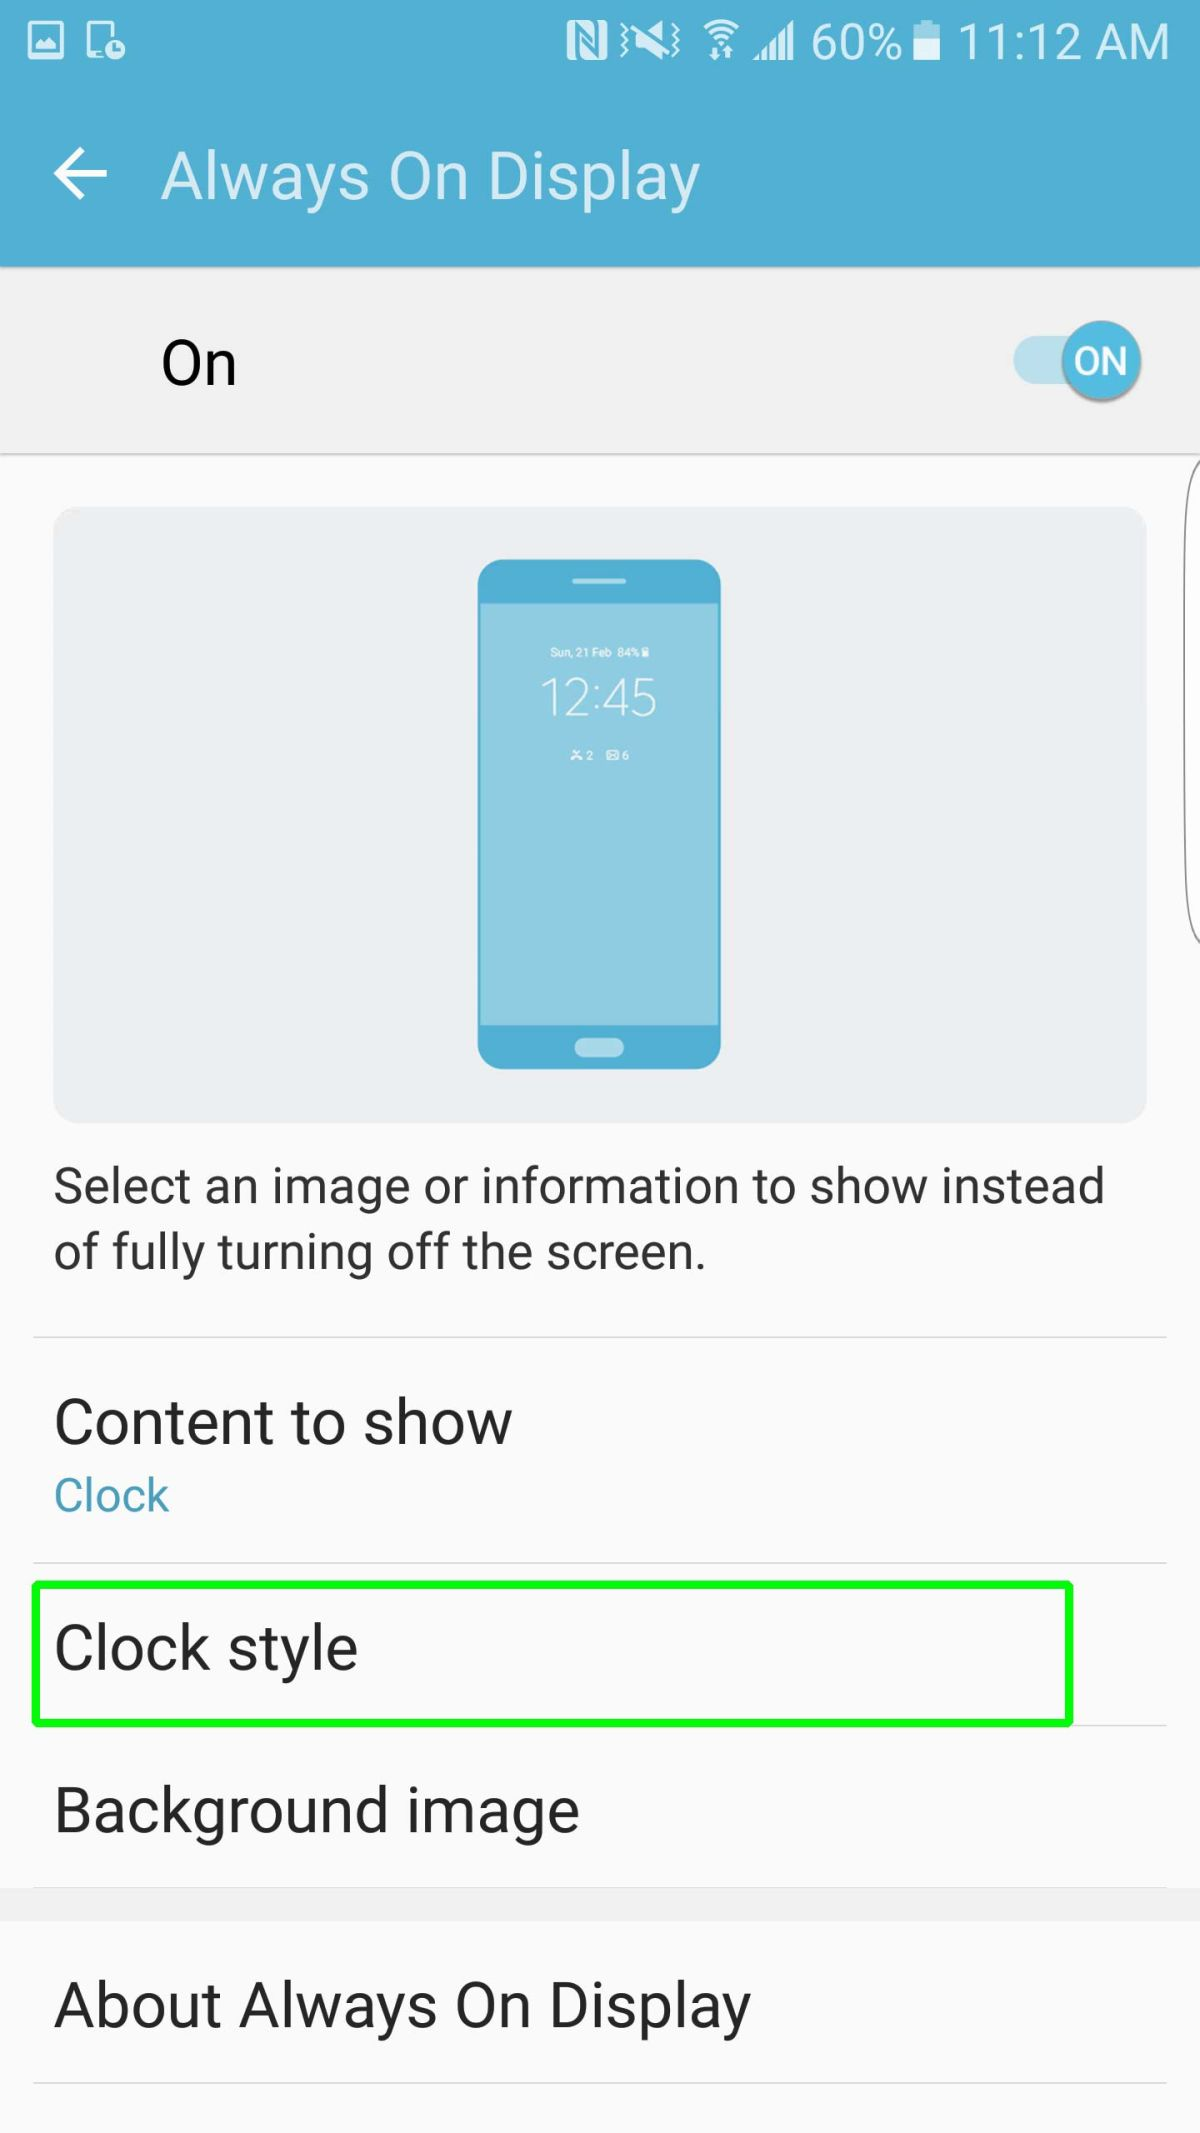 How to Set Up Always On Display on Your Galaxy S7 - Samsung Galaxy